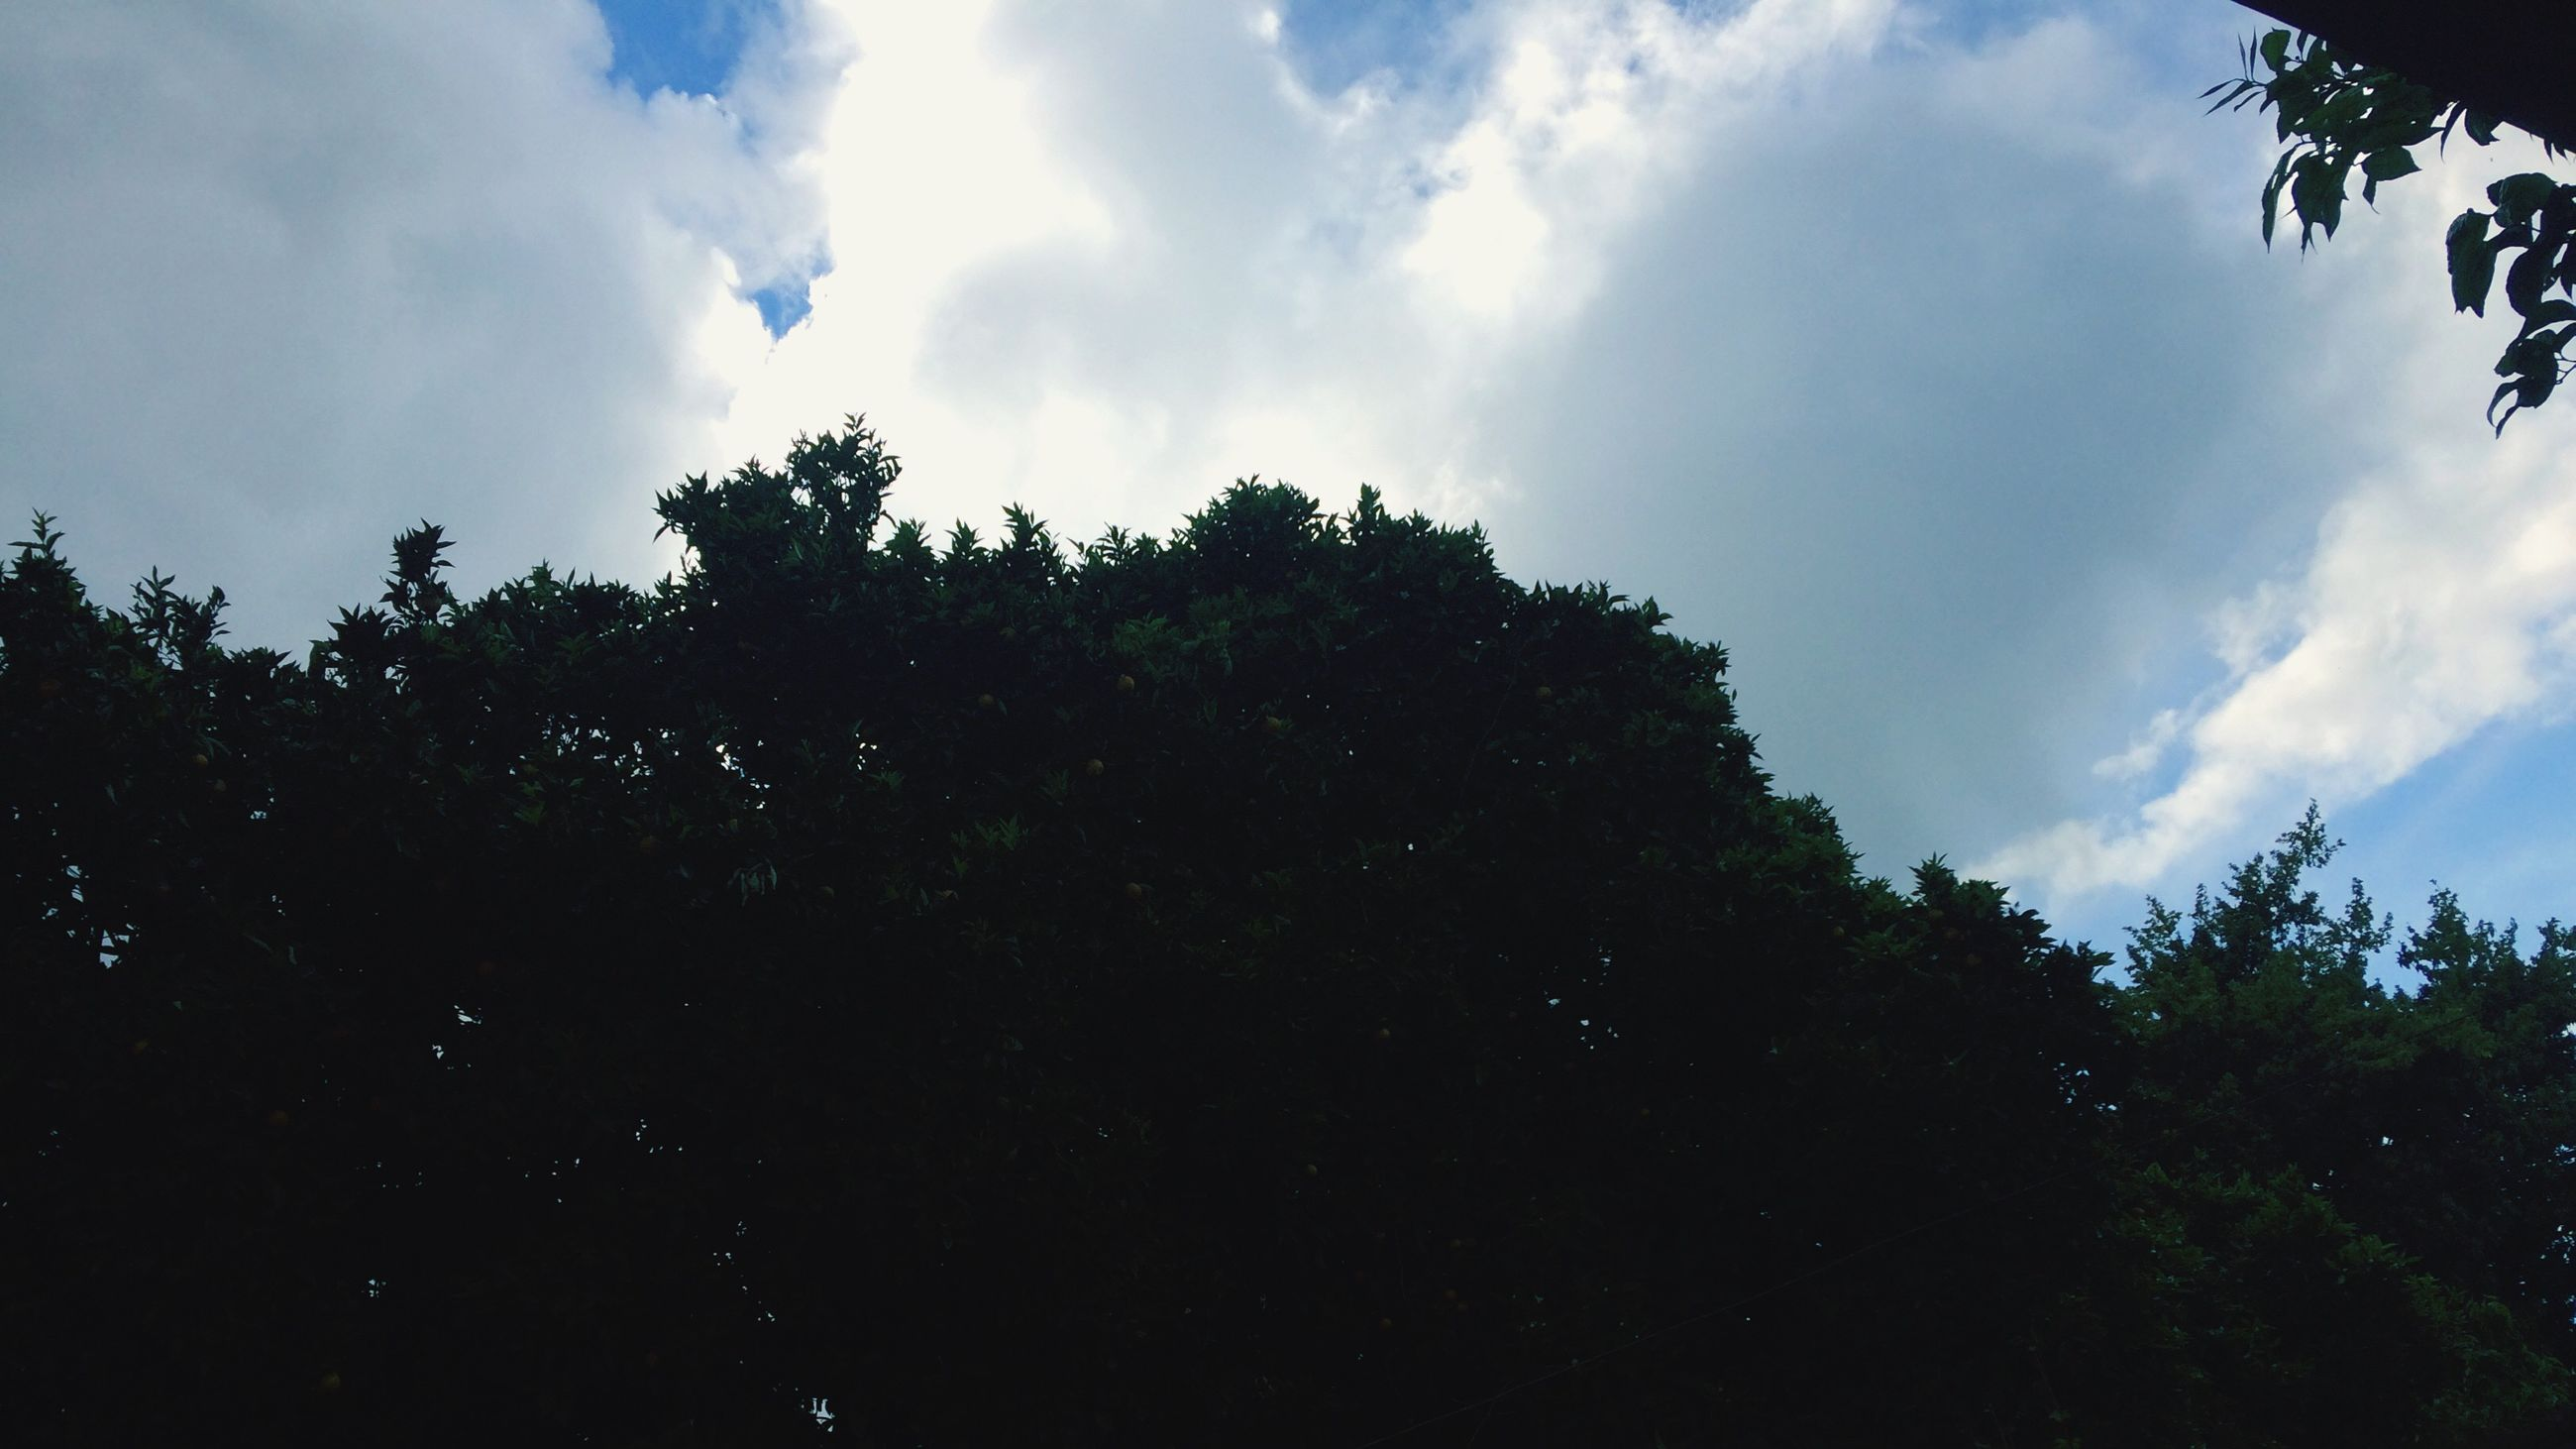 tree, sky, low angle view, growth, silhouette, tranquility, scenics, nature, tranquil scene, beauty in nature, cloud - sky, cloud, branch, day, blue, high section, outline, outdoors, green color, cloudy, treetop, lush foliage, majestic, non-urban scene, no people